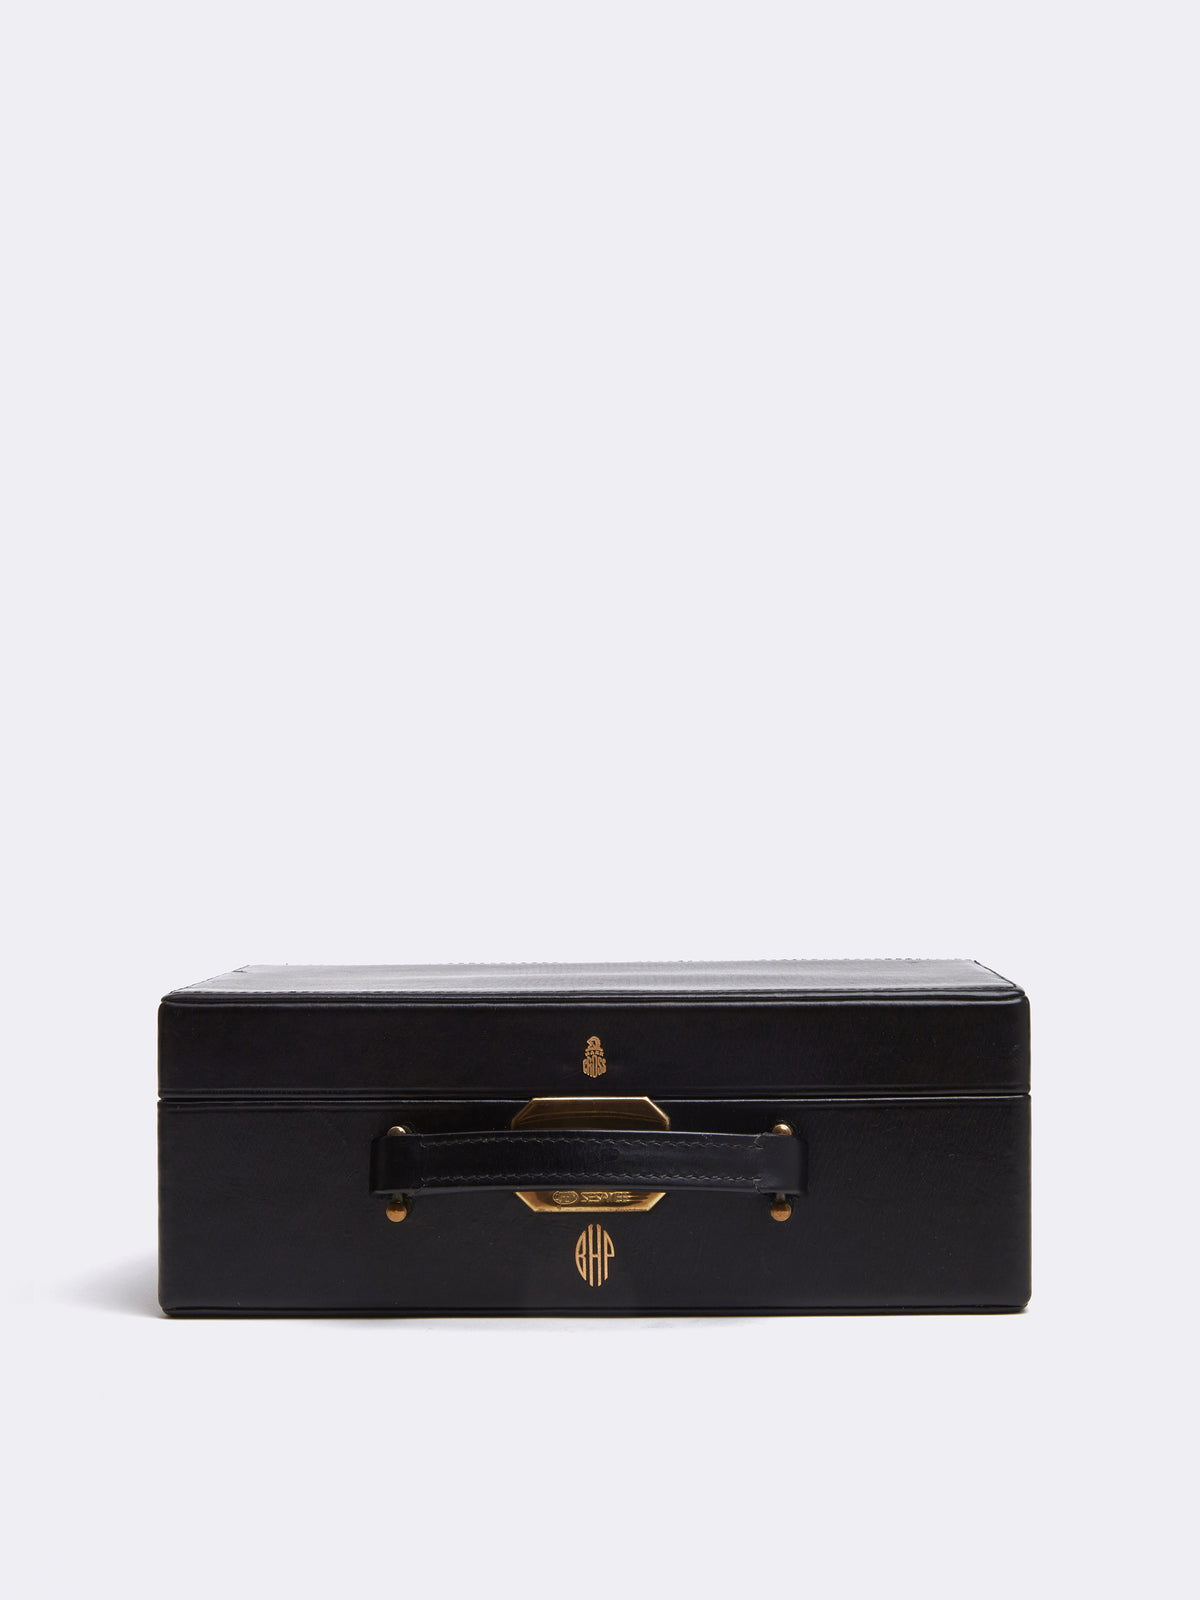 Mark Cross Vintage Leather Jewelry Box Black Side